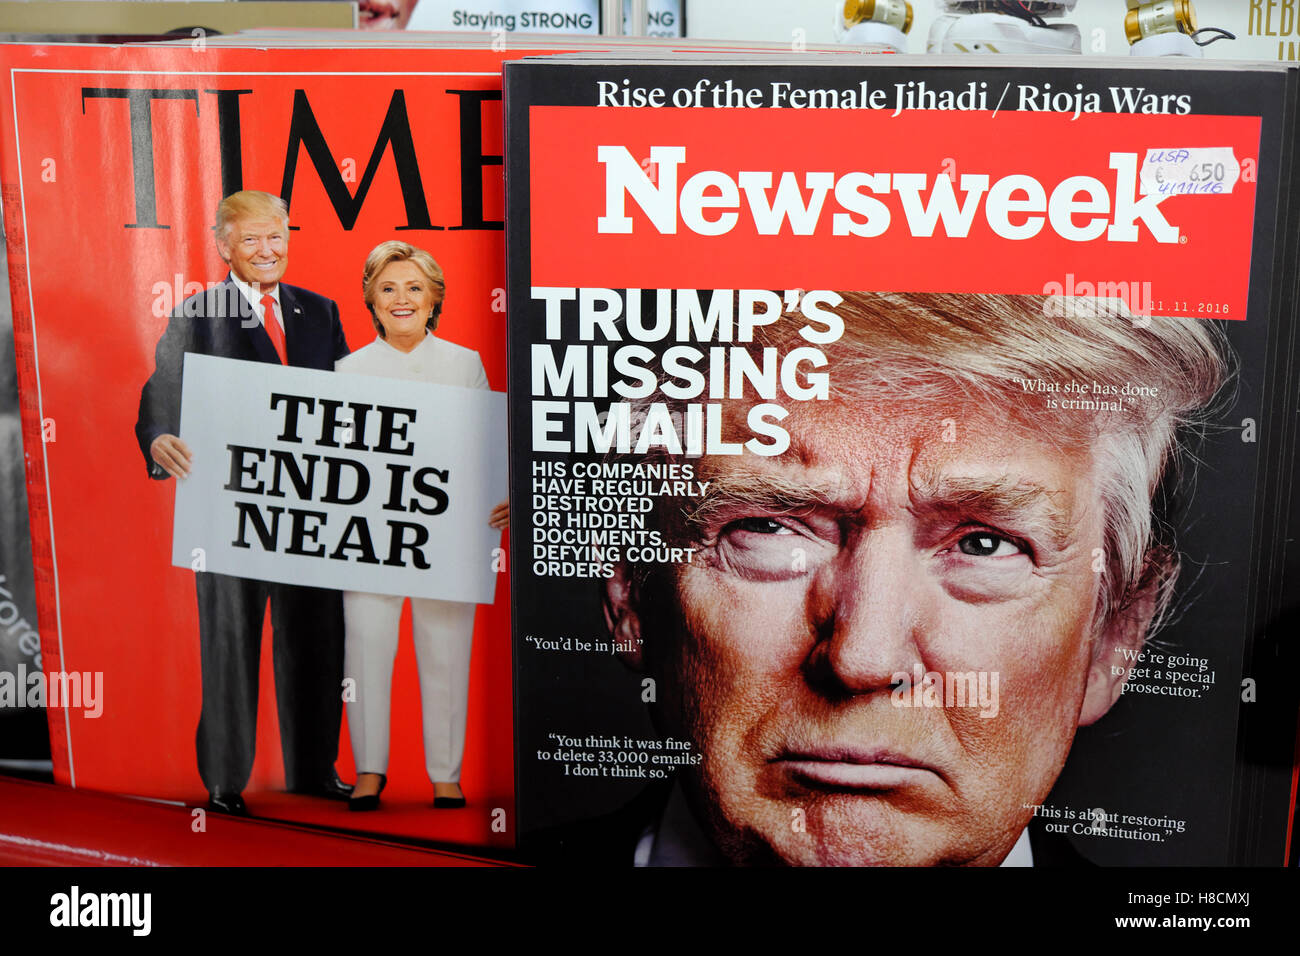 Time and Newsweek magazines front covers at newsagent Donald Trump  & Hillary Clinton American US election November - Stock Image